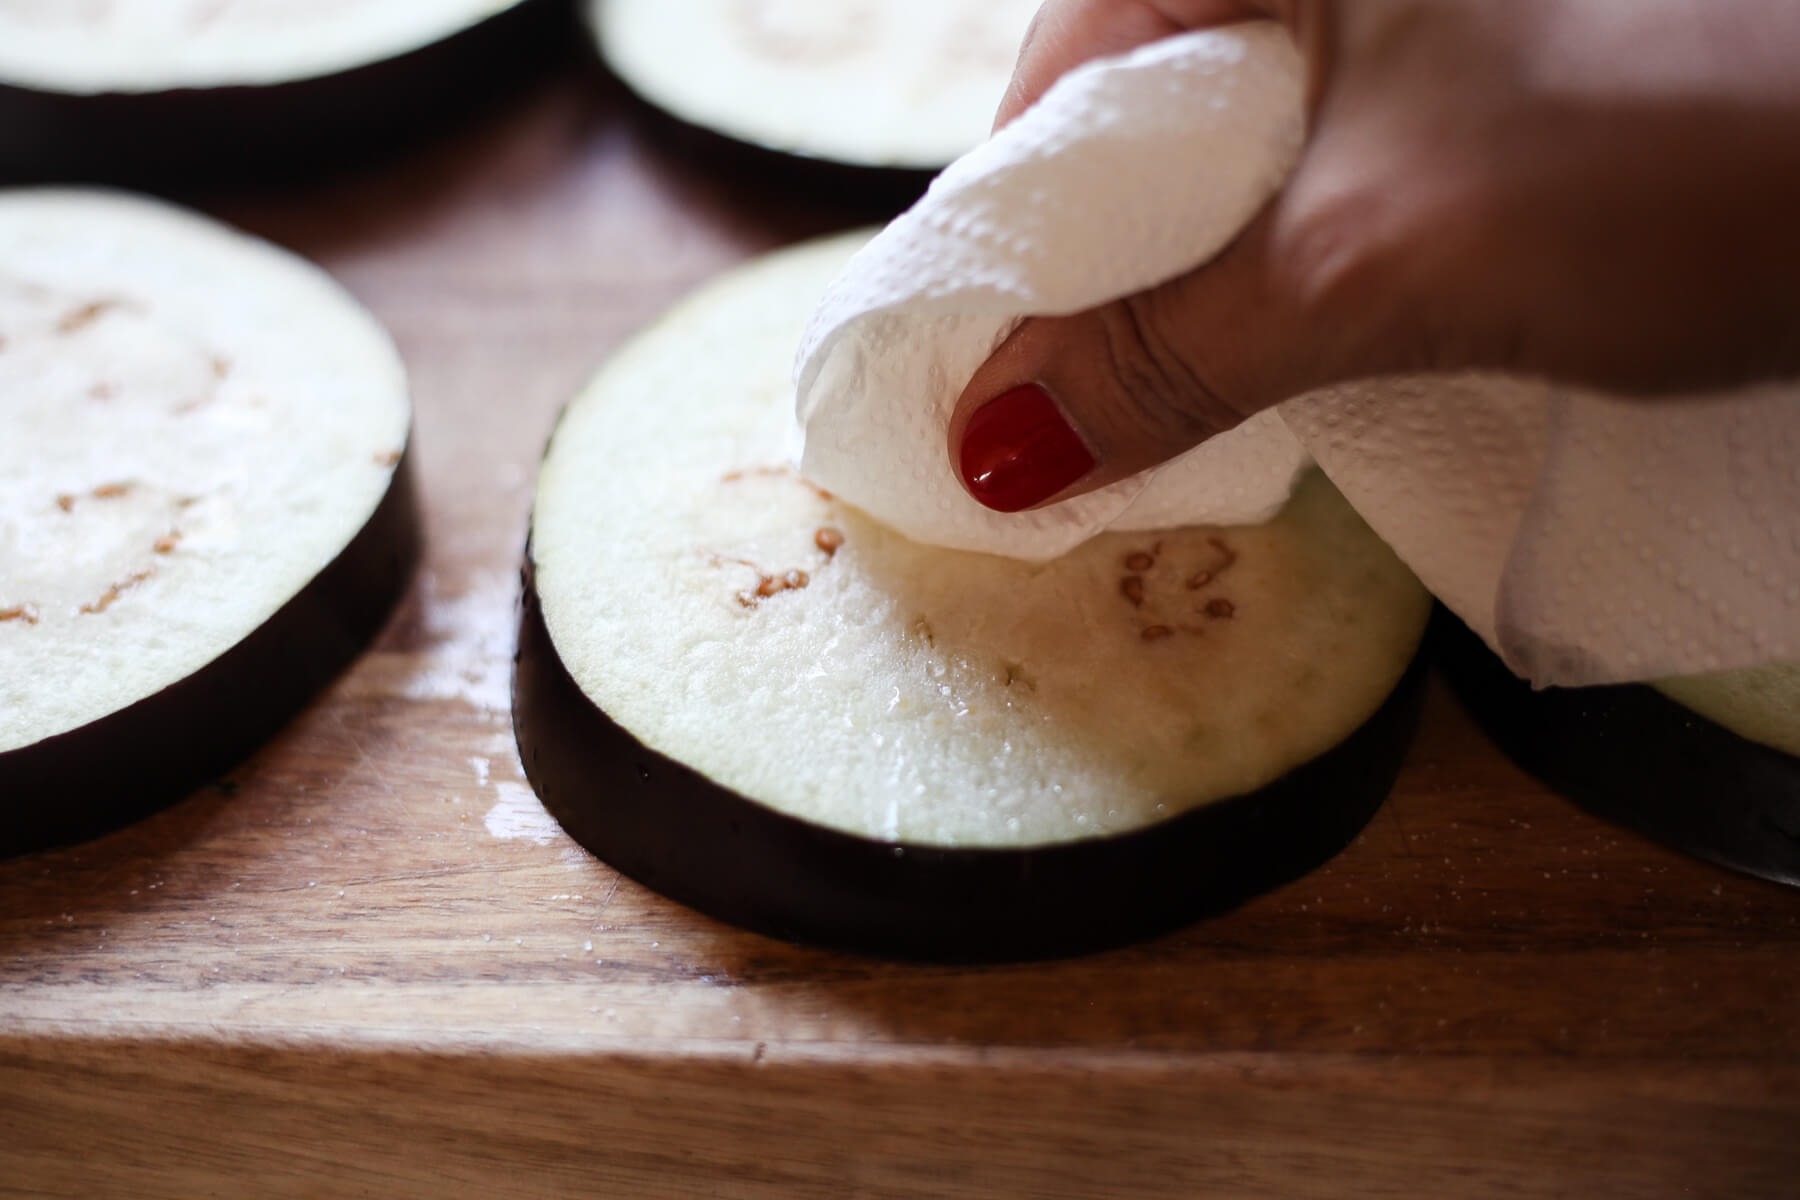 Water and salt is wiped off of a salted eggplant round with a paper towel.